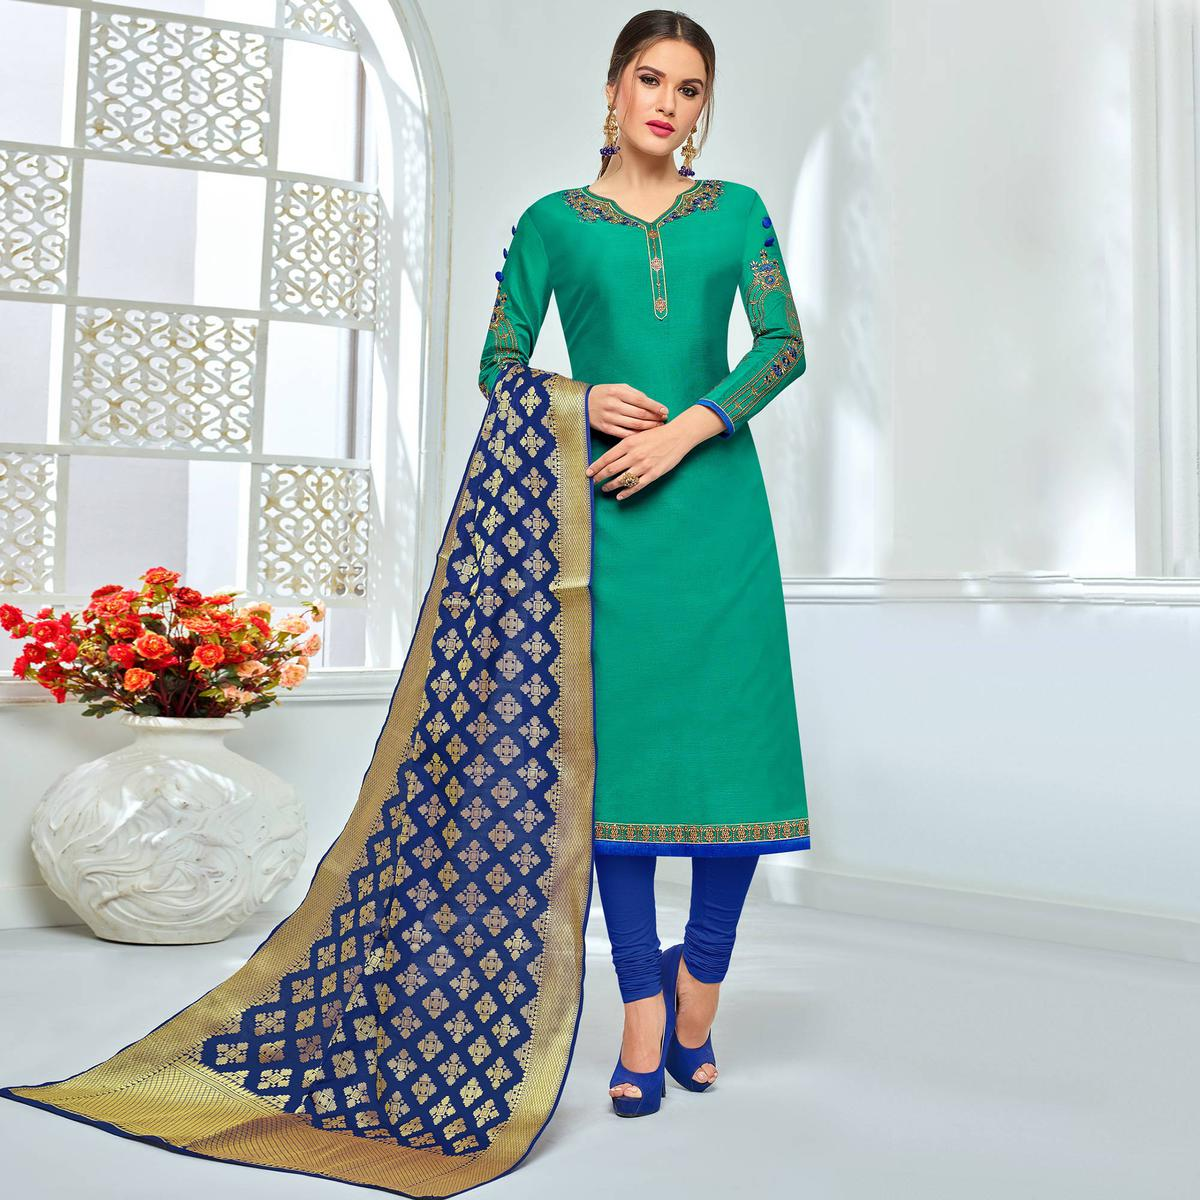 Lovely Teal Green Colored Party Wear Embroidered Chanderi Silk Suit